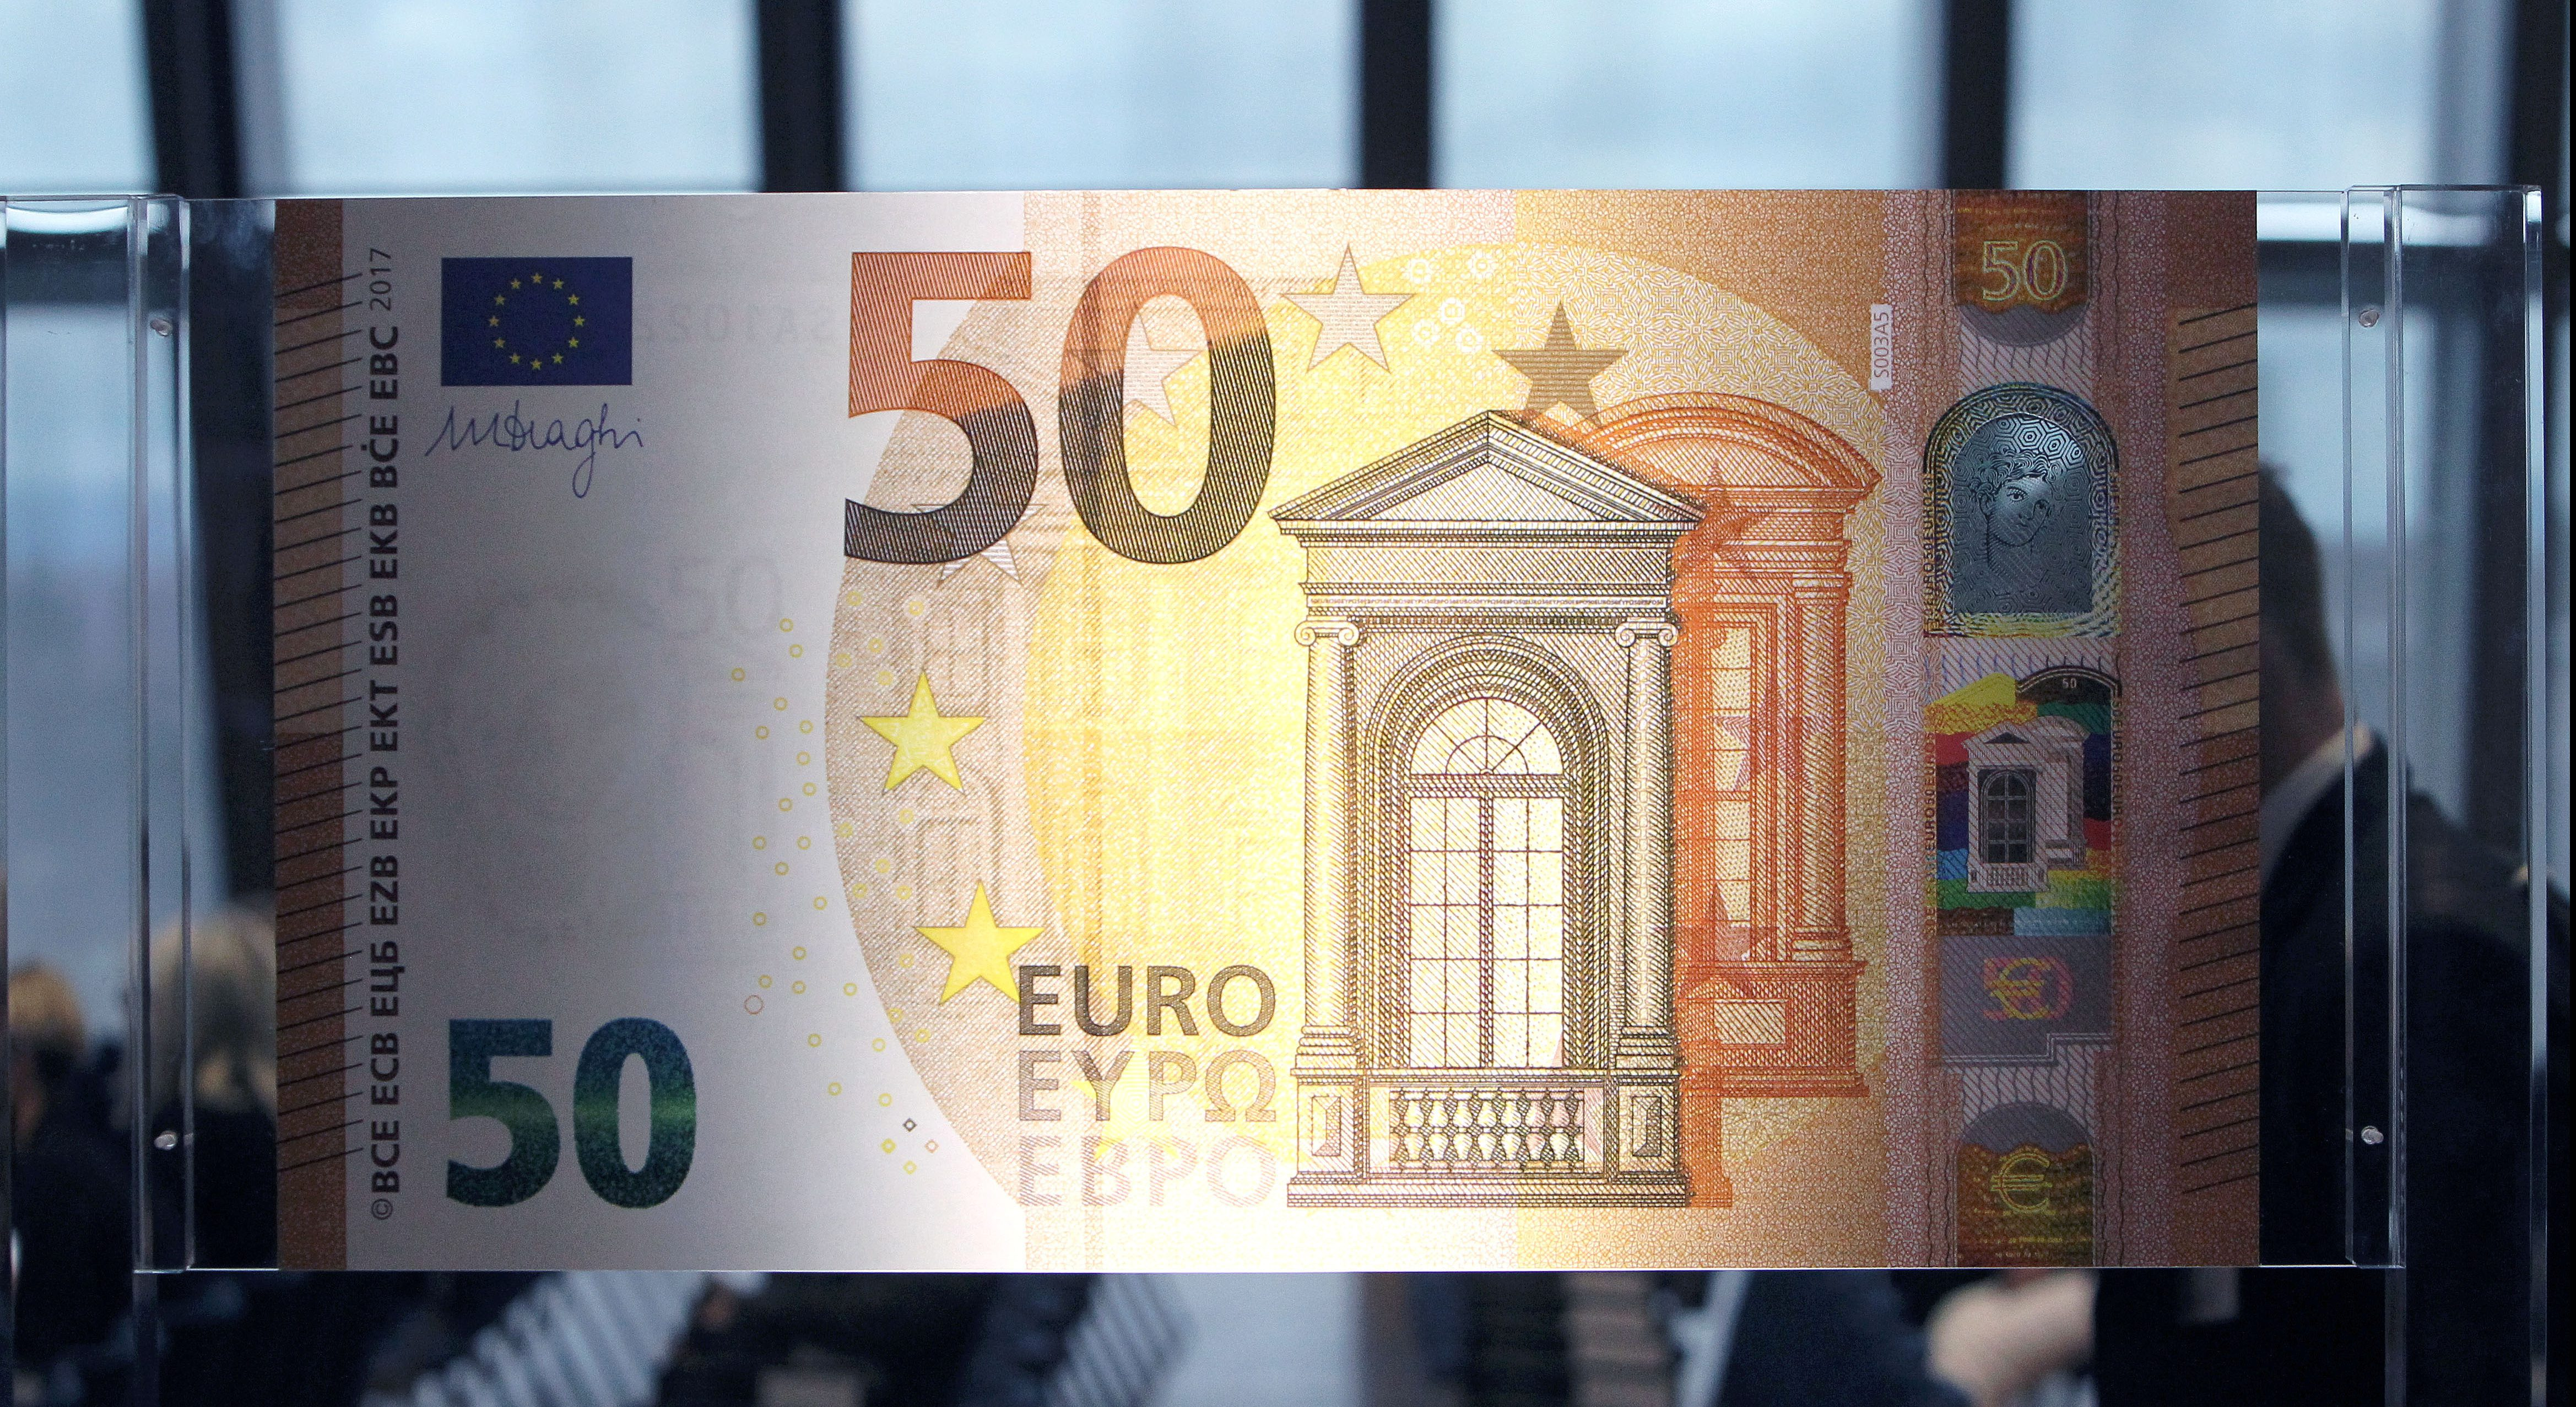 The European Central Bank (ECB) presents the new 50 euro note at the bank's headquarters in Frankfurt, Germany, July 5, 2016.